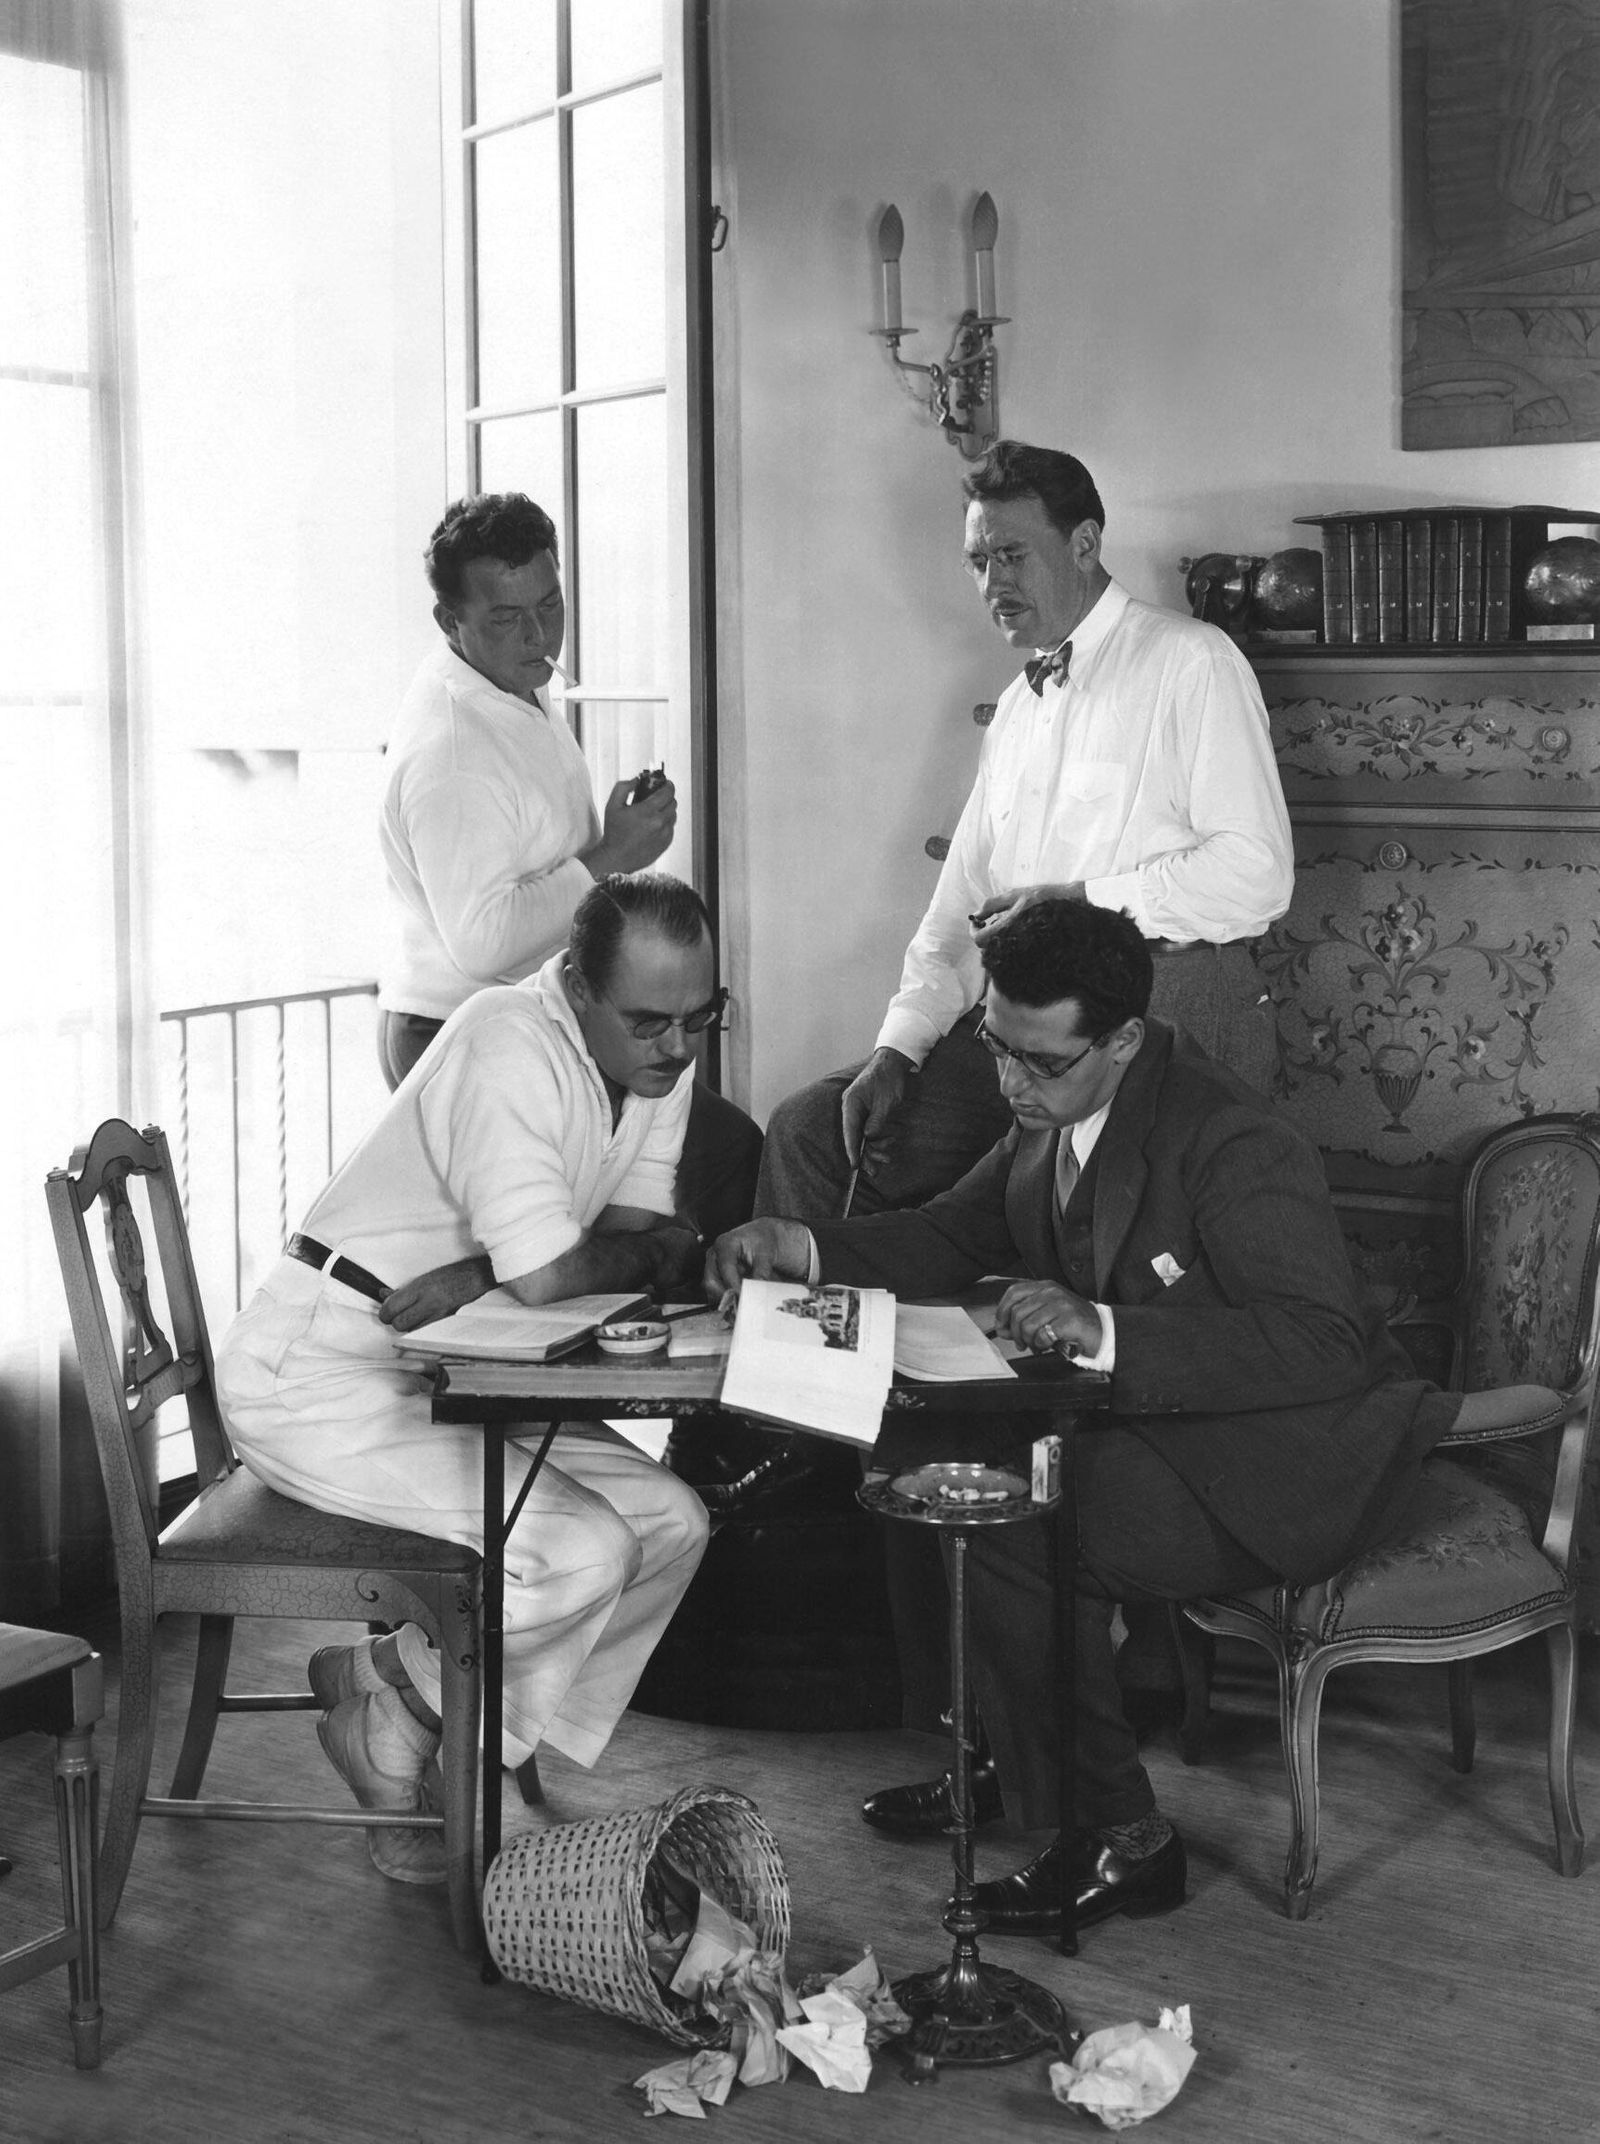 Director LEWIS MILESTONE, scenarist DELL ANDREWS, advisor GEORGE CUKOR and dialogue author MAXWELL ANDERSON plot out ALL